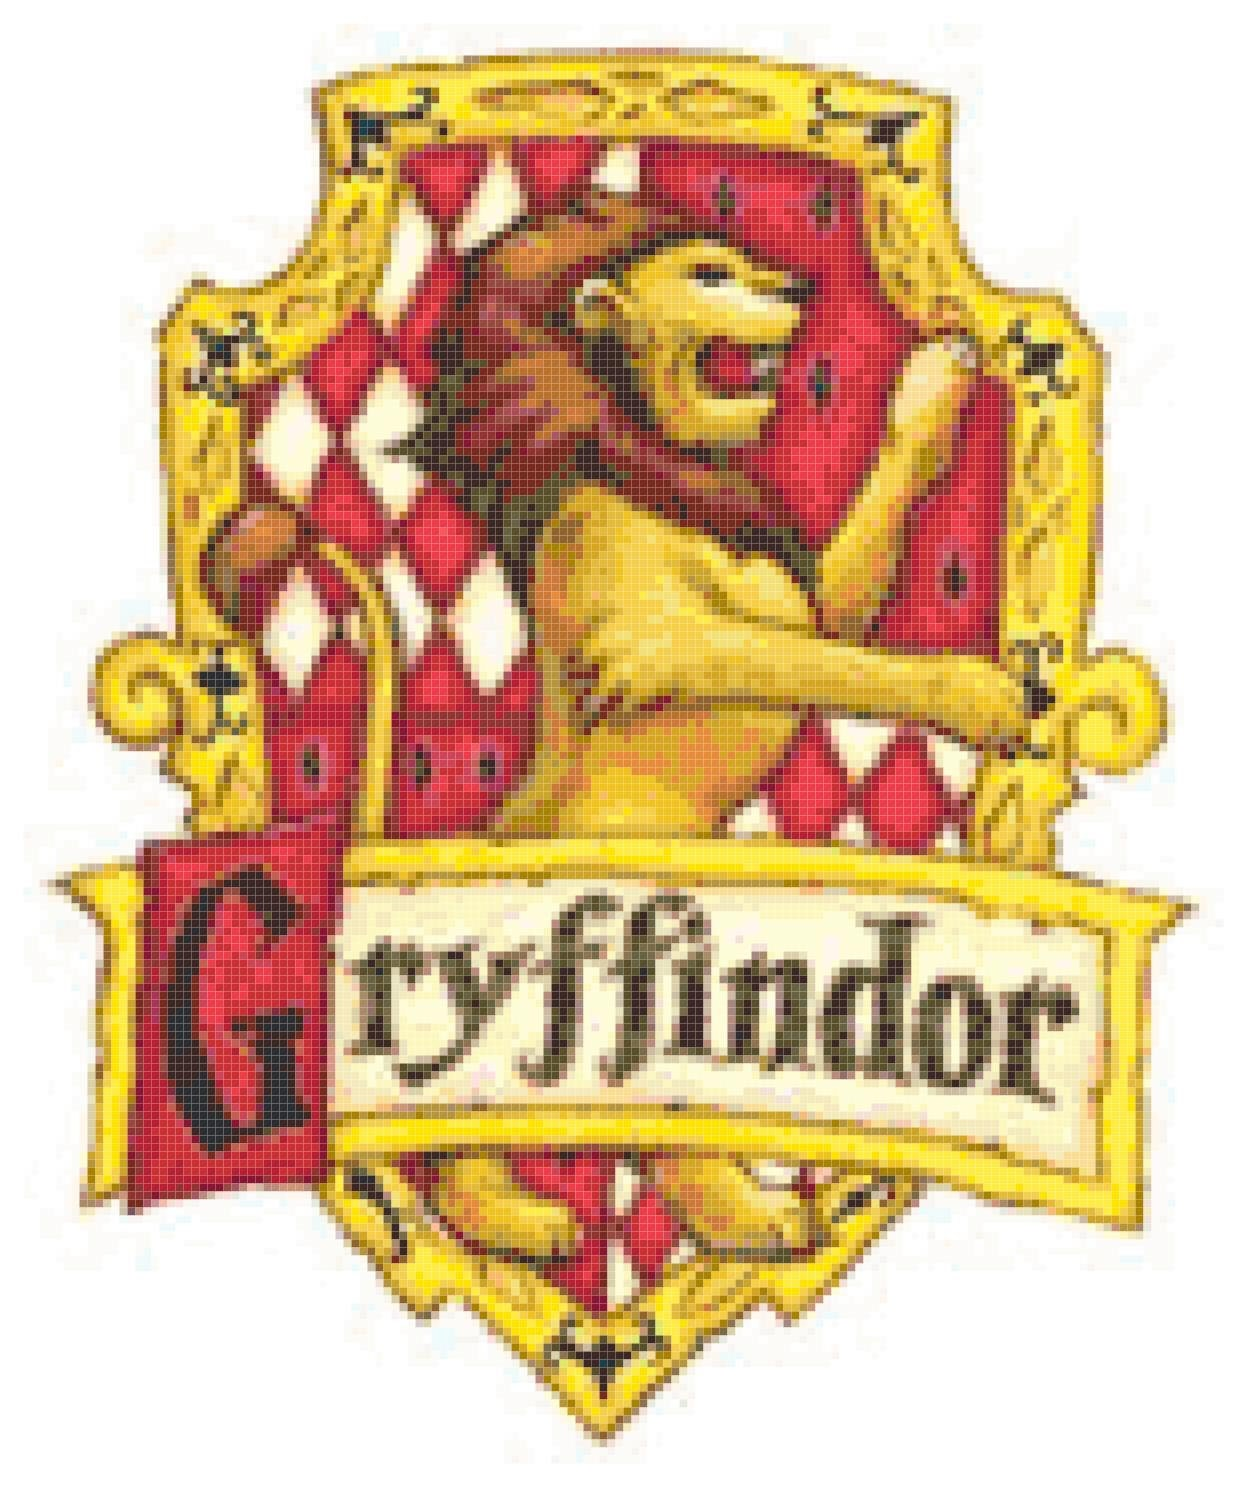 photo relating to Gryffindor Crest Printable titled Harry Potter Gryffindor Crest Printable